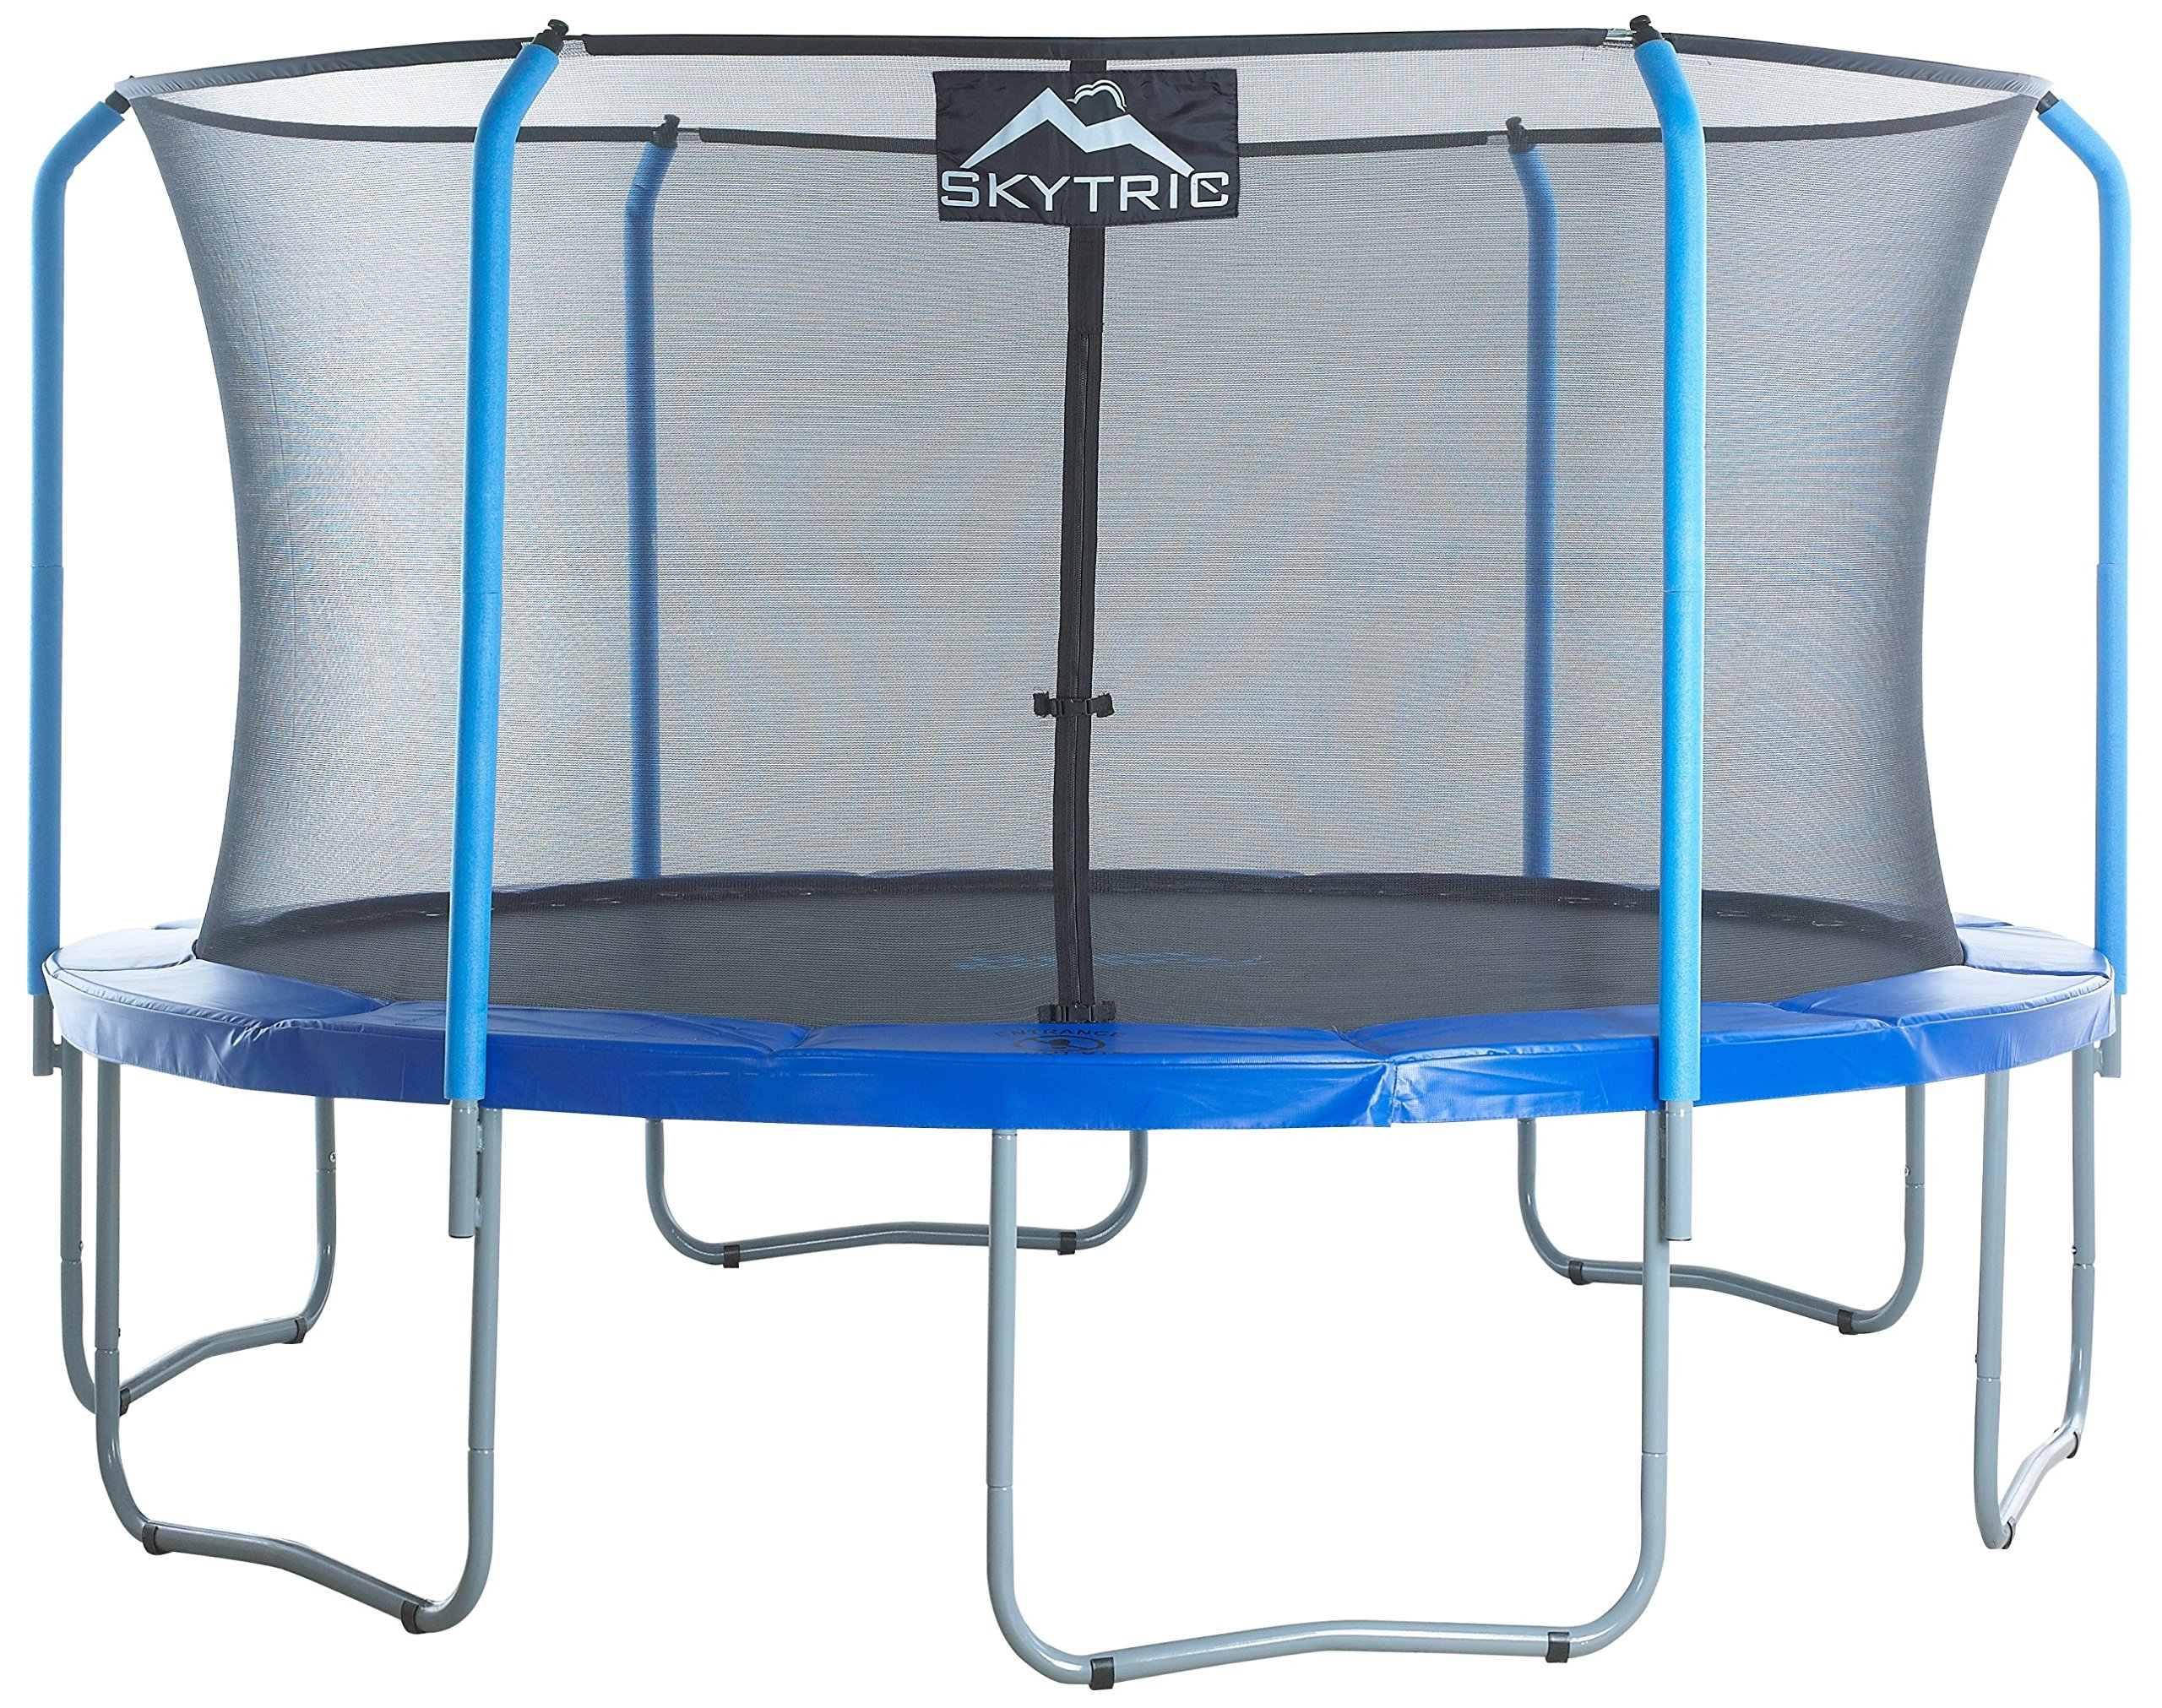 SKYTRIC'' 15 FT. Trampoline with Top Ring Enclosure System Equipped with The Easy Assemble Feature by SKYTRIC